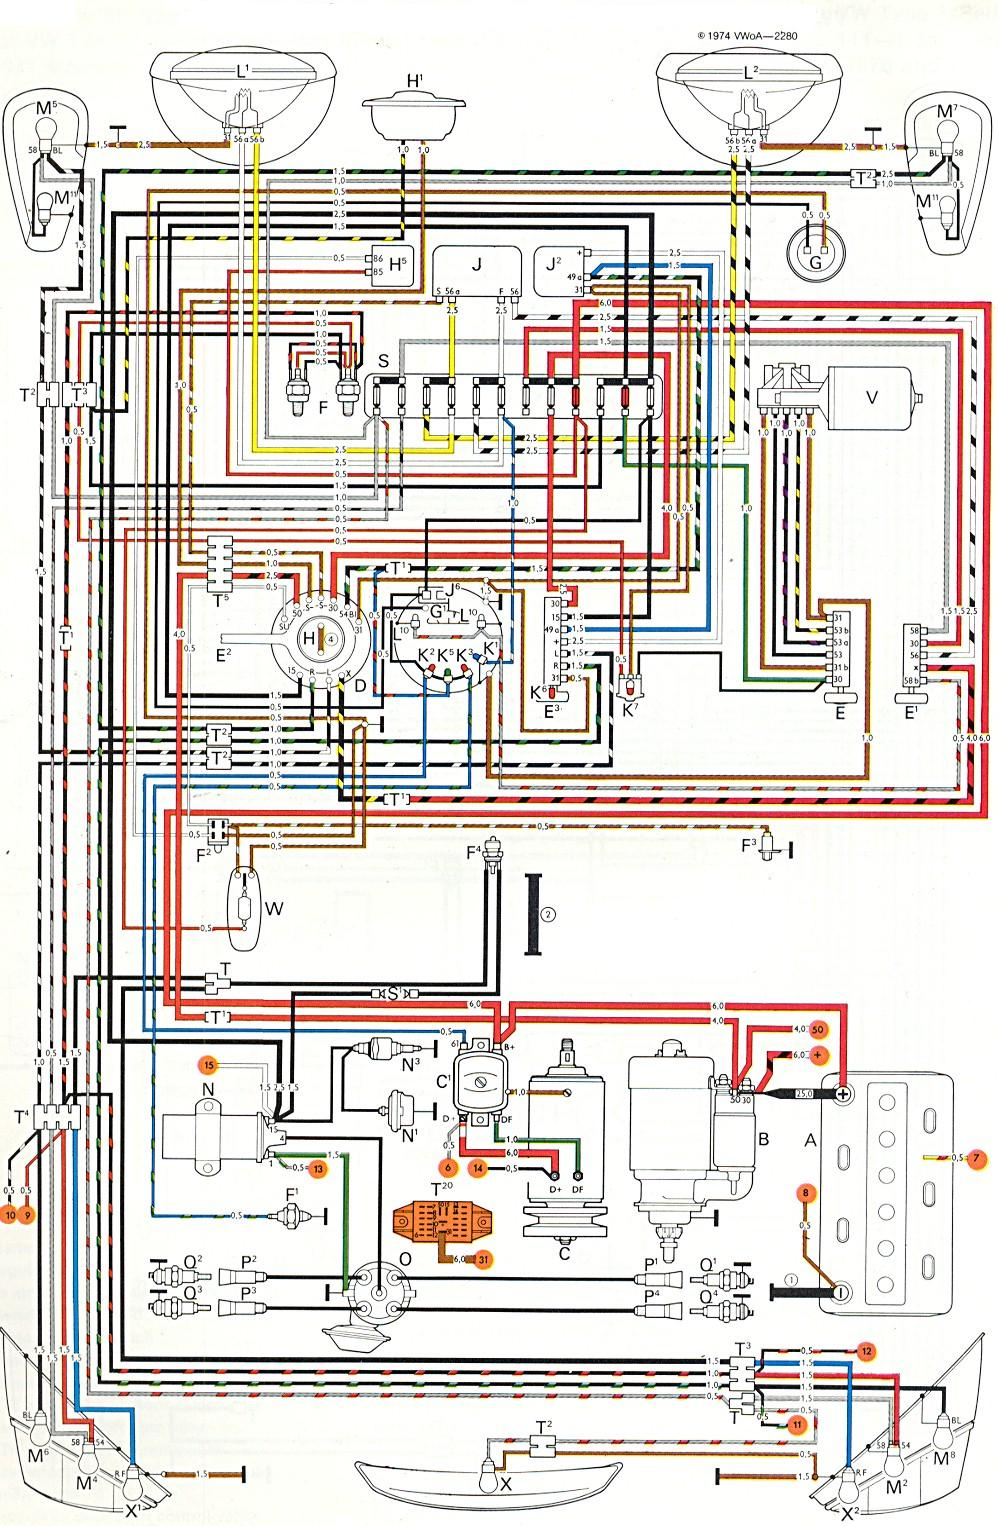 71 bug wiring diagram wiring diagram blog71 vw beetle wiring diagram wiring diagram 71 super beetle parts 71 bug wiring diagram